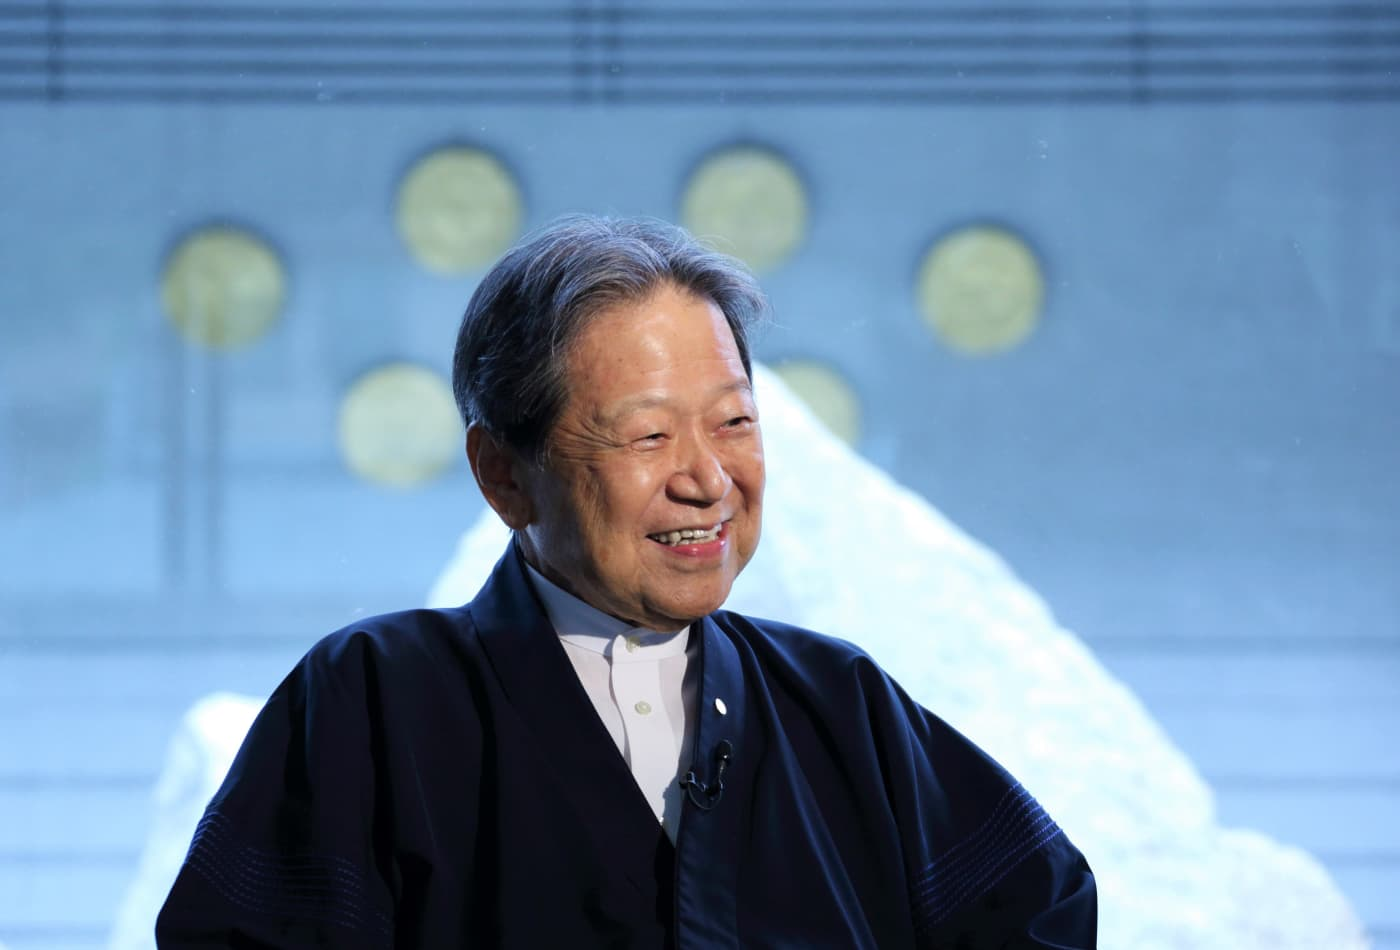 Investor known as the 'Warren Buffett of Japan': The No. 1 secret to success, wealth and happiness in life